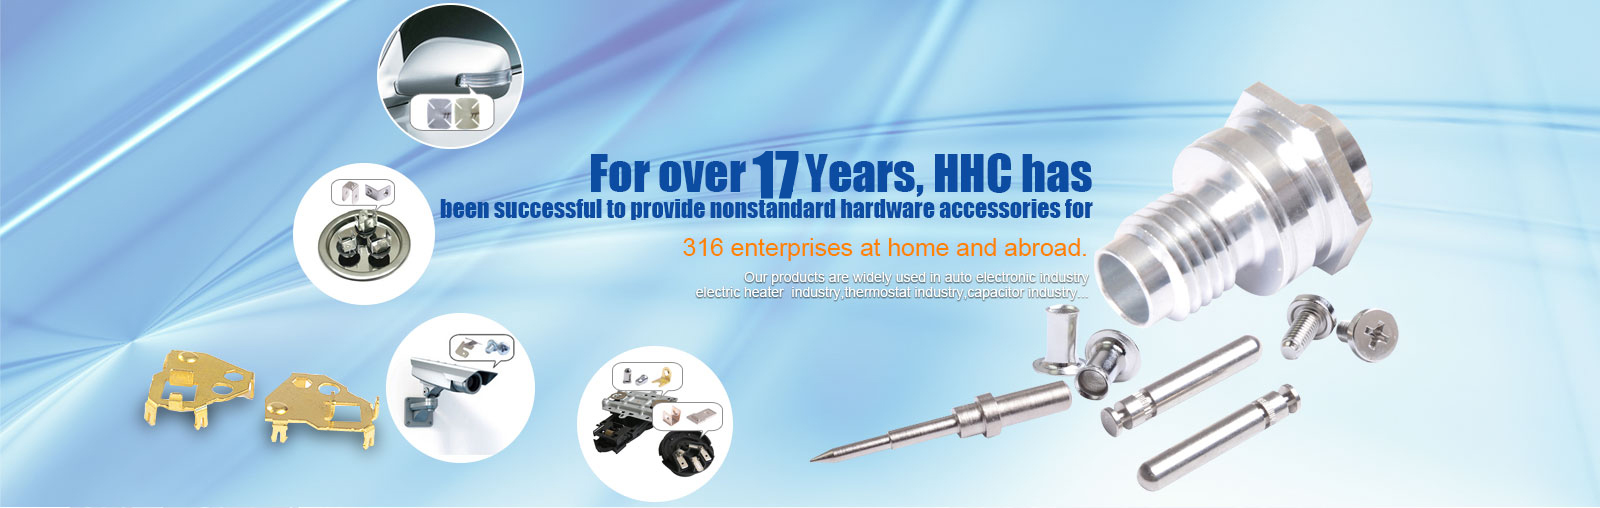 For over 17 years,HHC has been successful for 316 enterprises at home and abroad to provide non-standard hardware accessories.